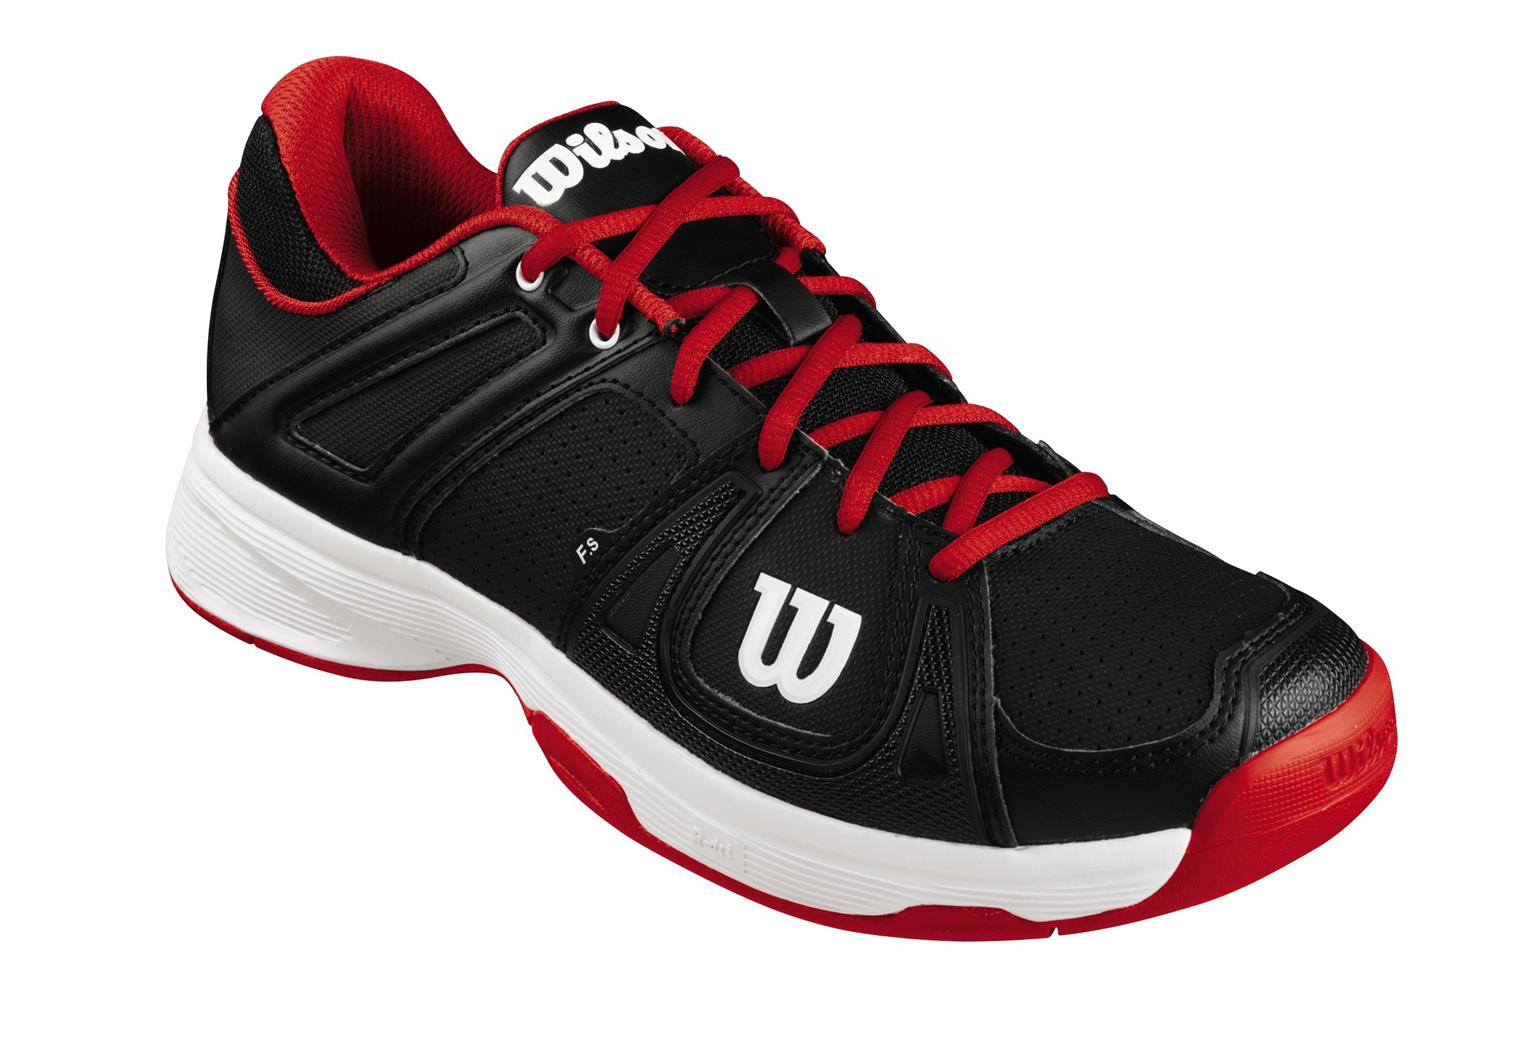 Wilson Team Tennis Shoes UK7.5 UK8.5